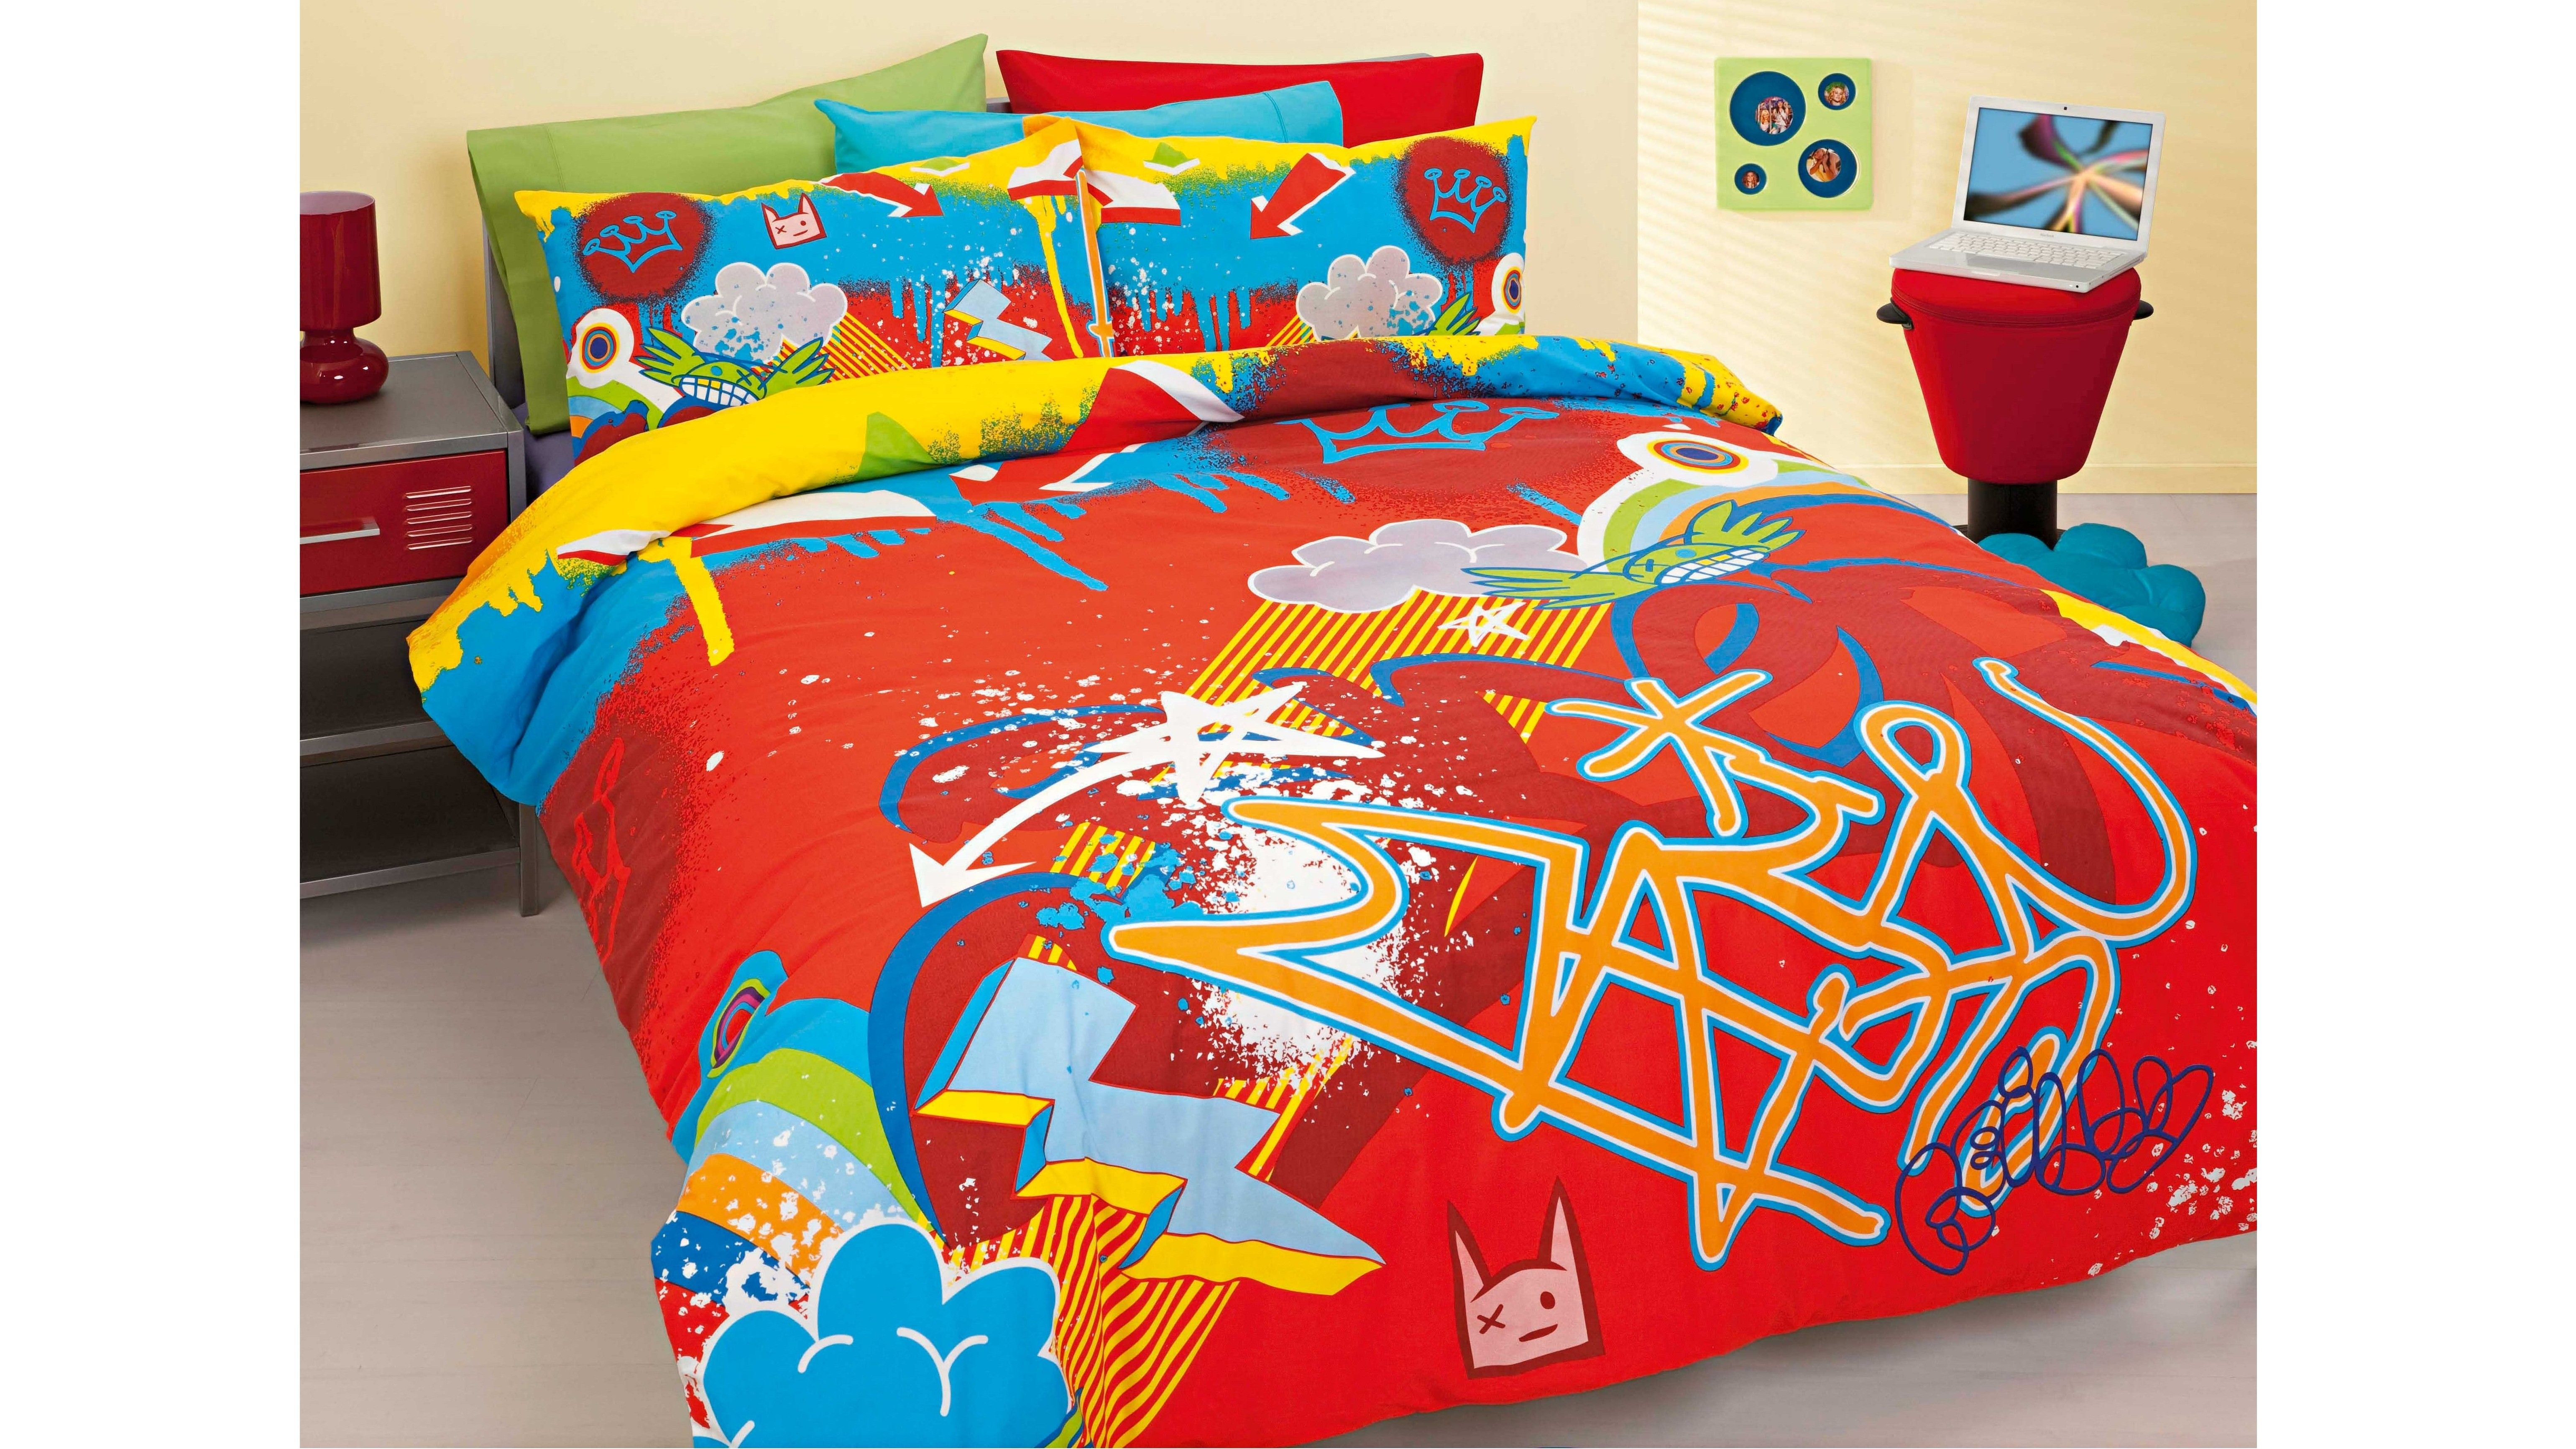 Graffiti Quilt Cover Set   a great design for Levi s room. Graffiti Quilt Cover Set   a great design for Levi s room   Kids